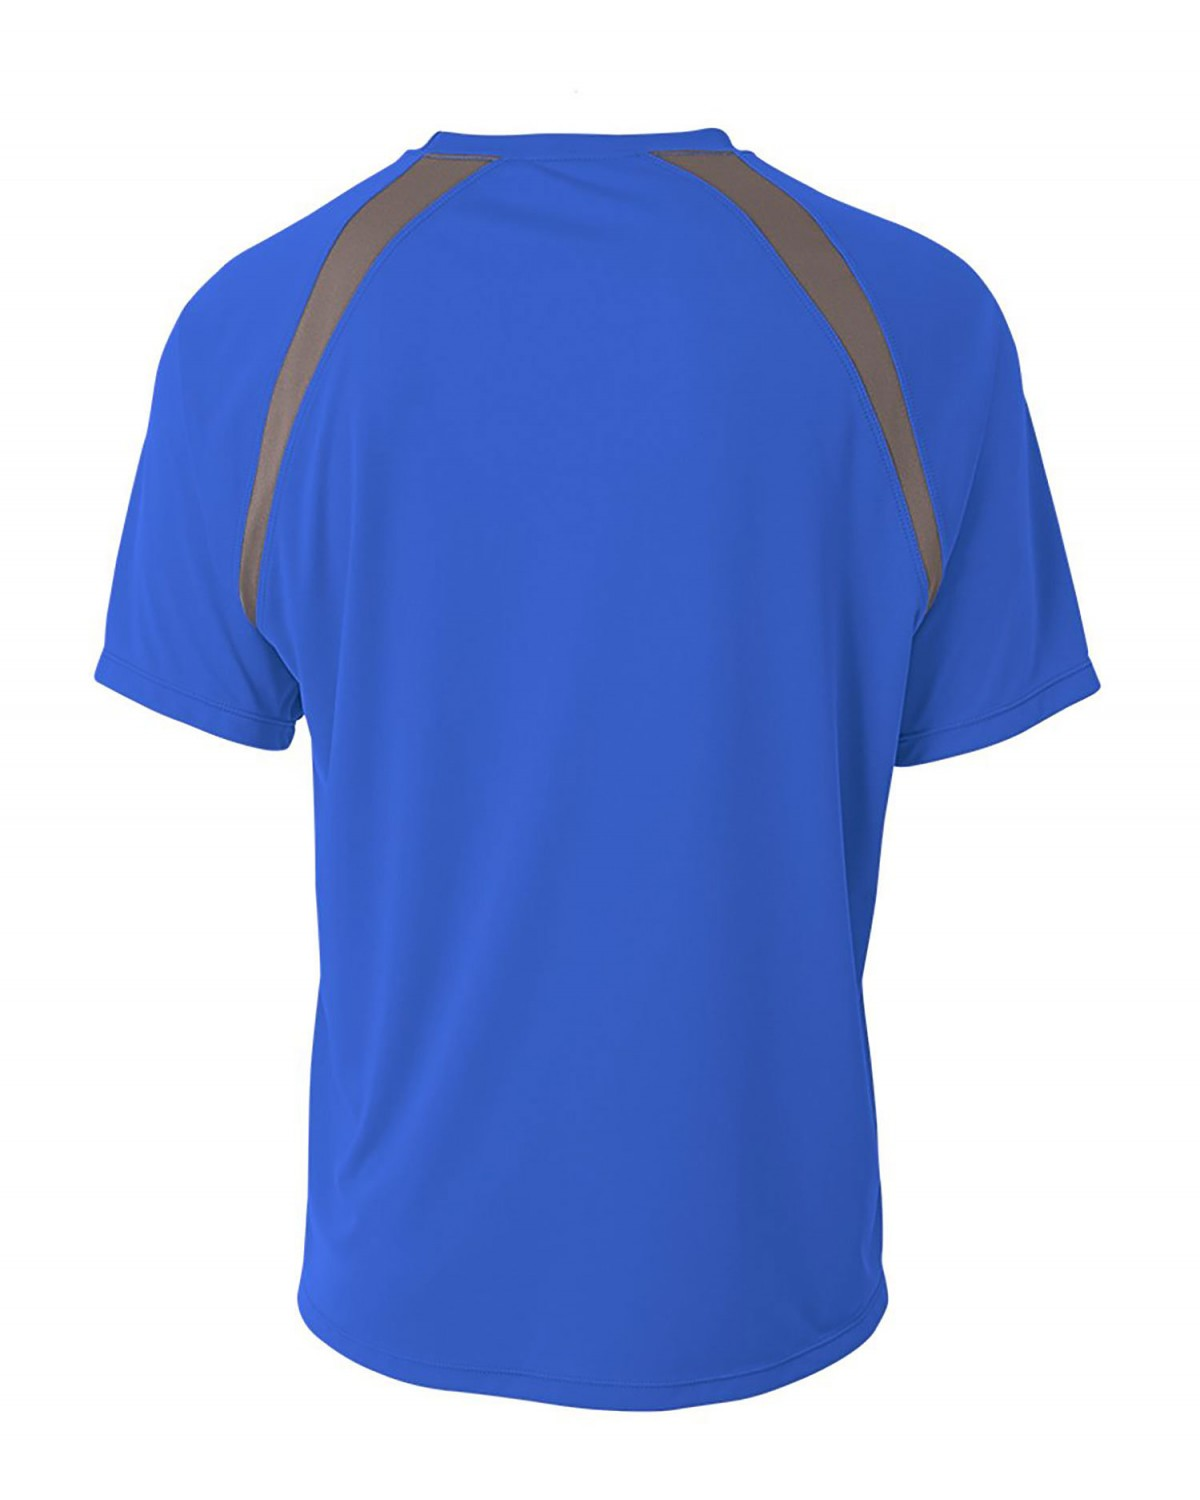 605WLBY Alleson Athletic WHITE/ROYAL